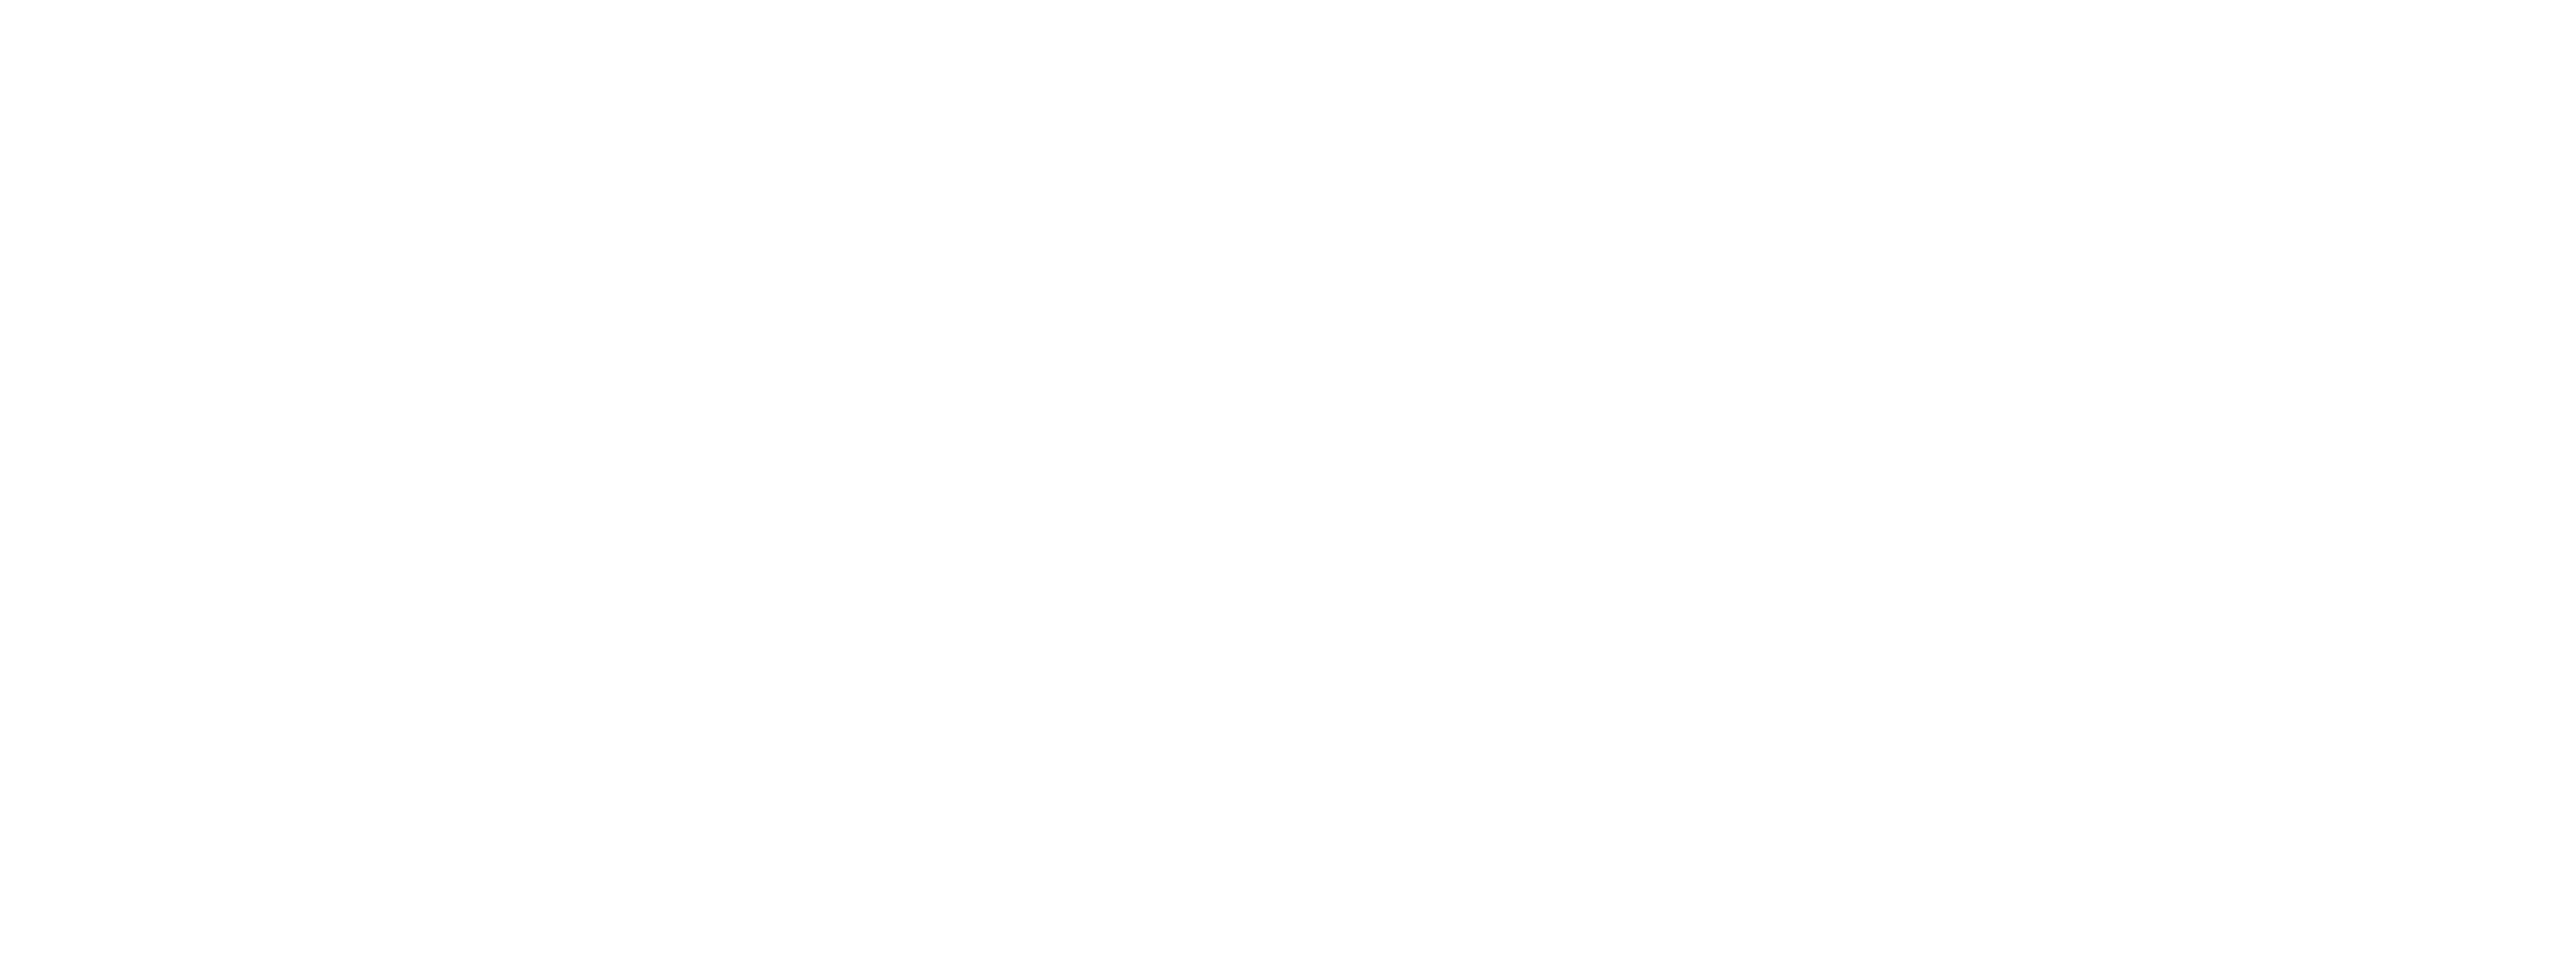 Rooted in Trophy